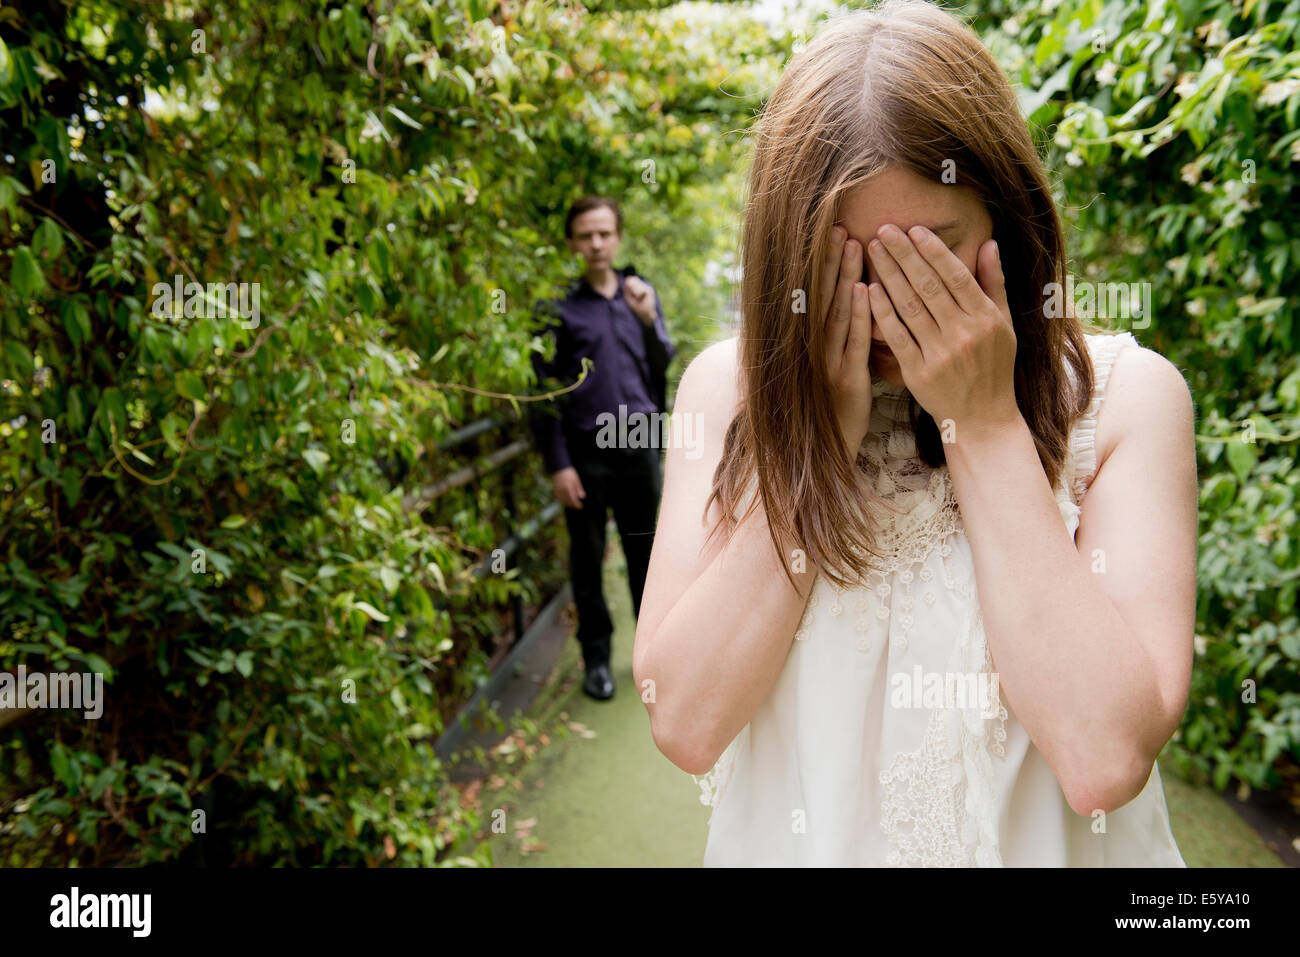 Tearful woman with hand on her face and man standing in the background. - Stock Image